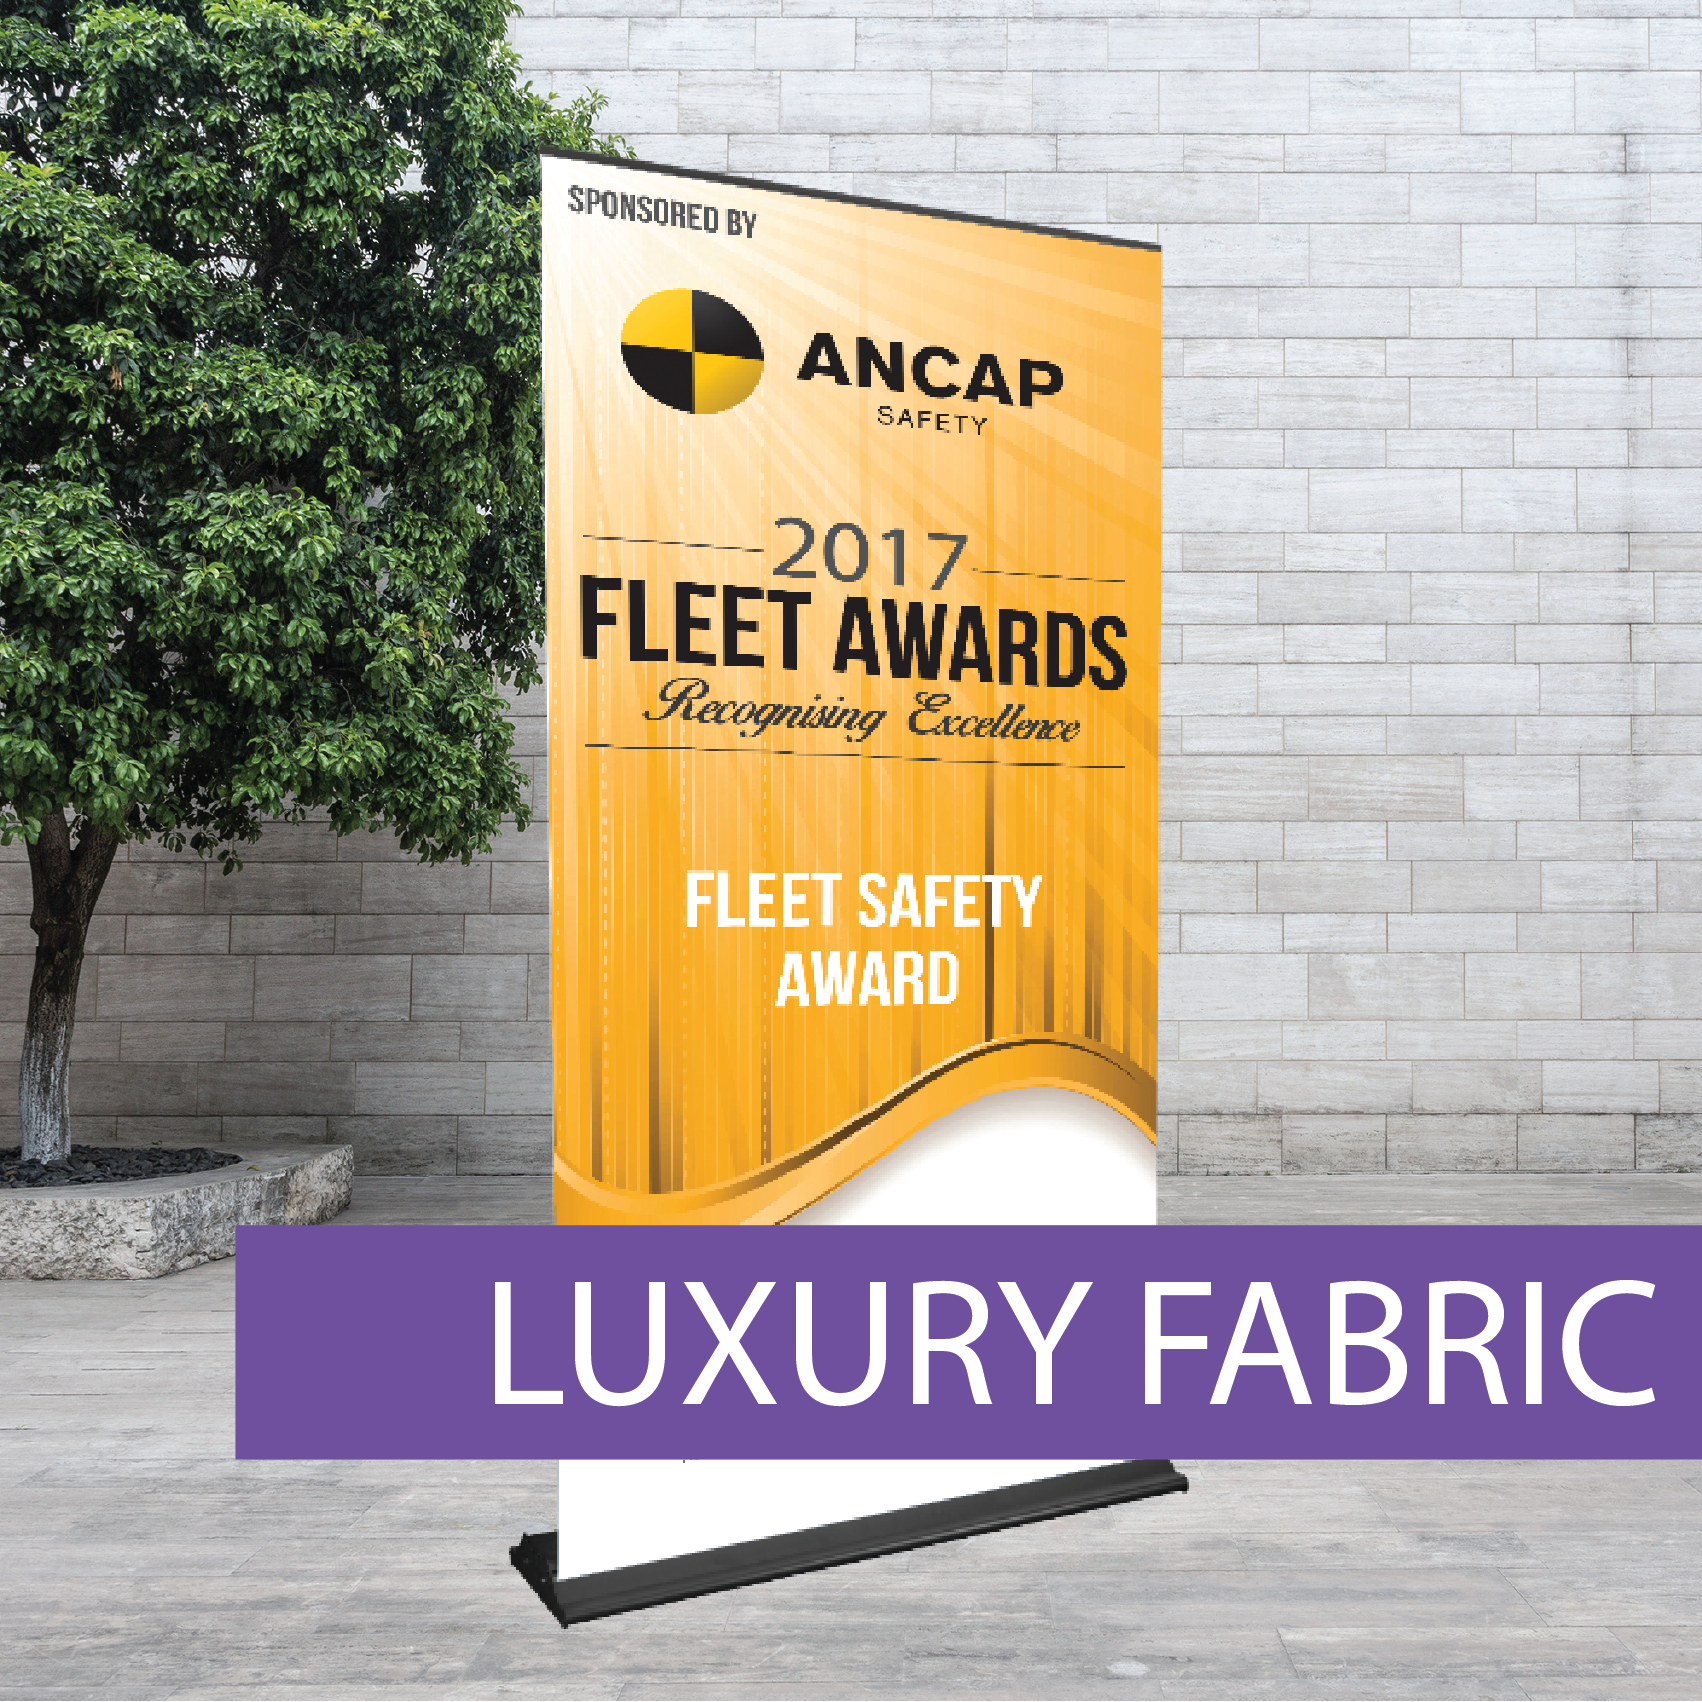 Luxury fabric Pull-up Banner